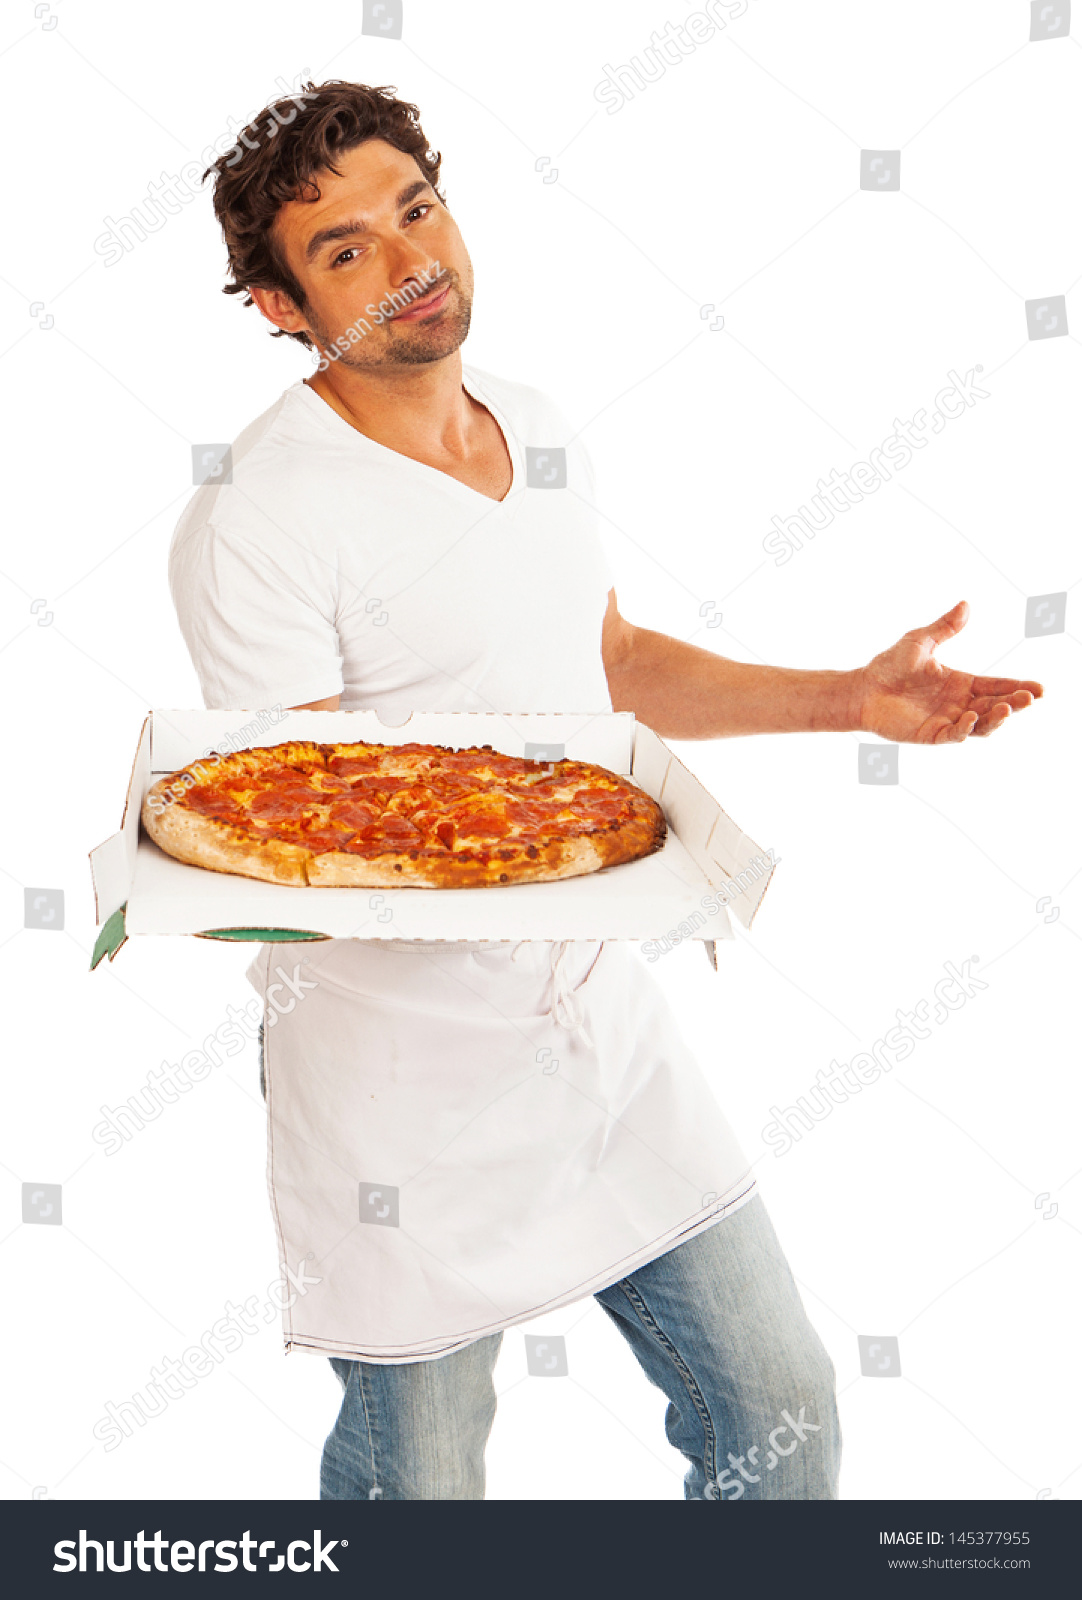 stock-photo-an-italian-man-holding-a-pep